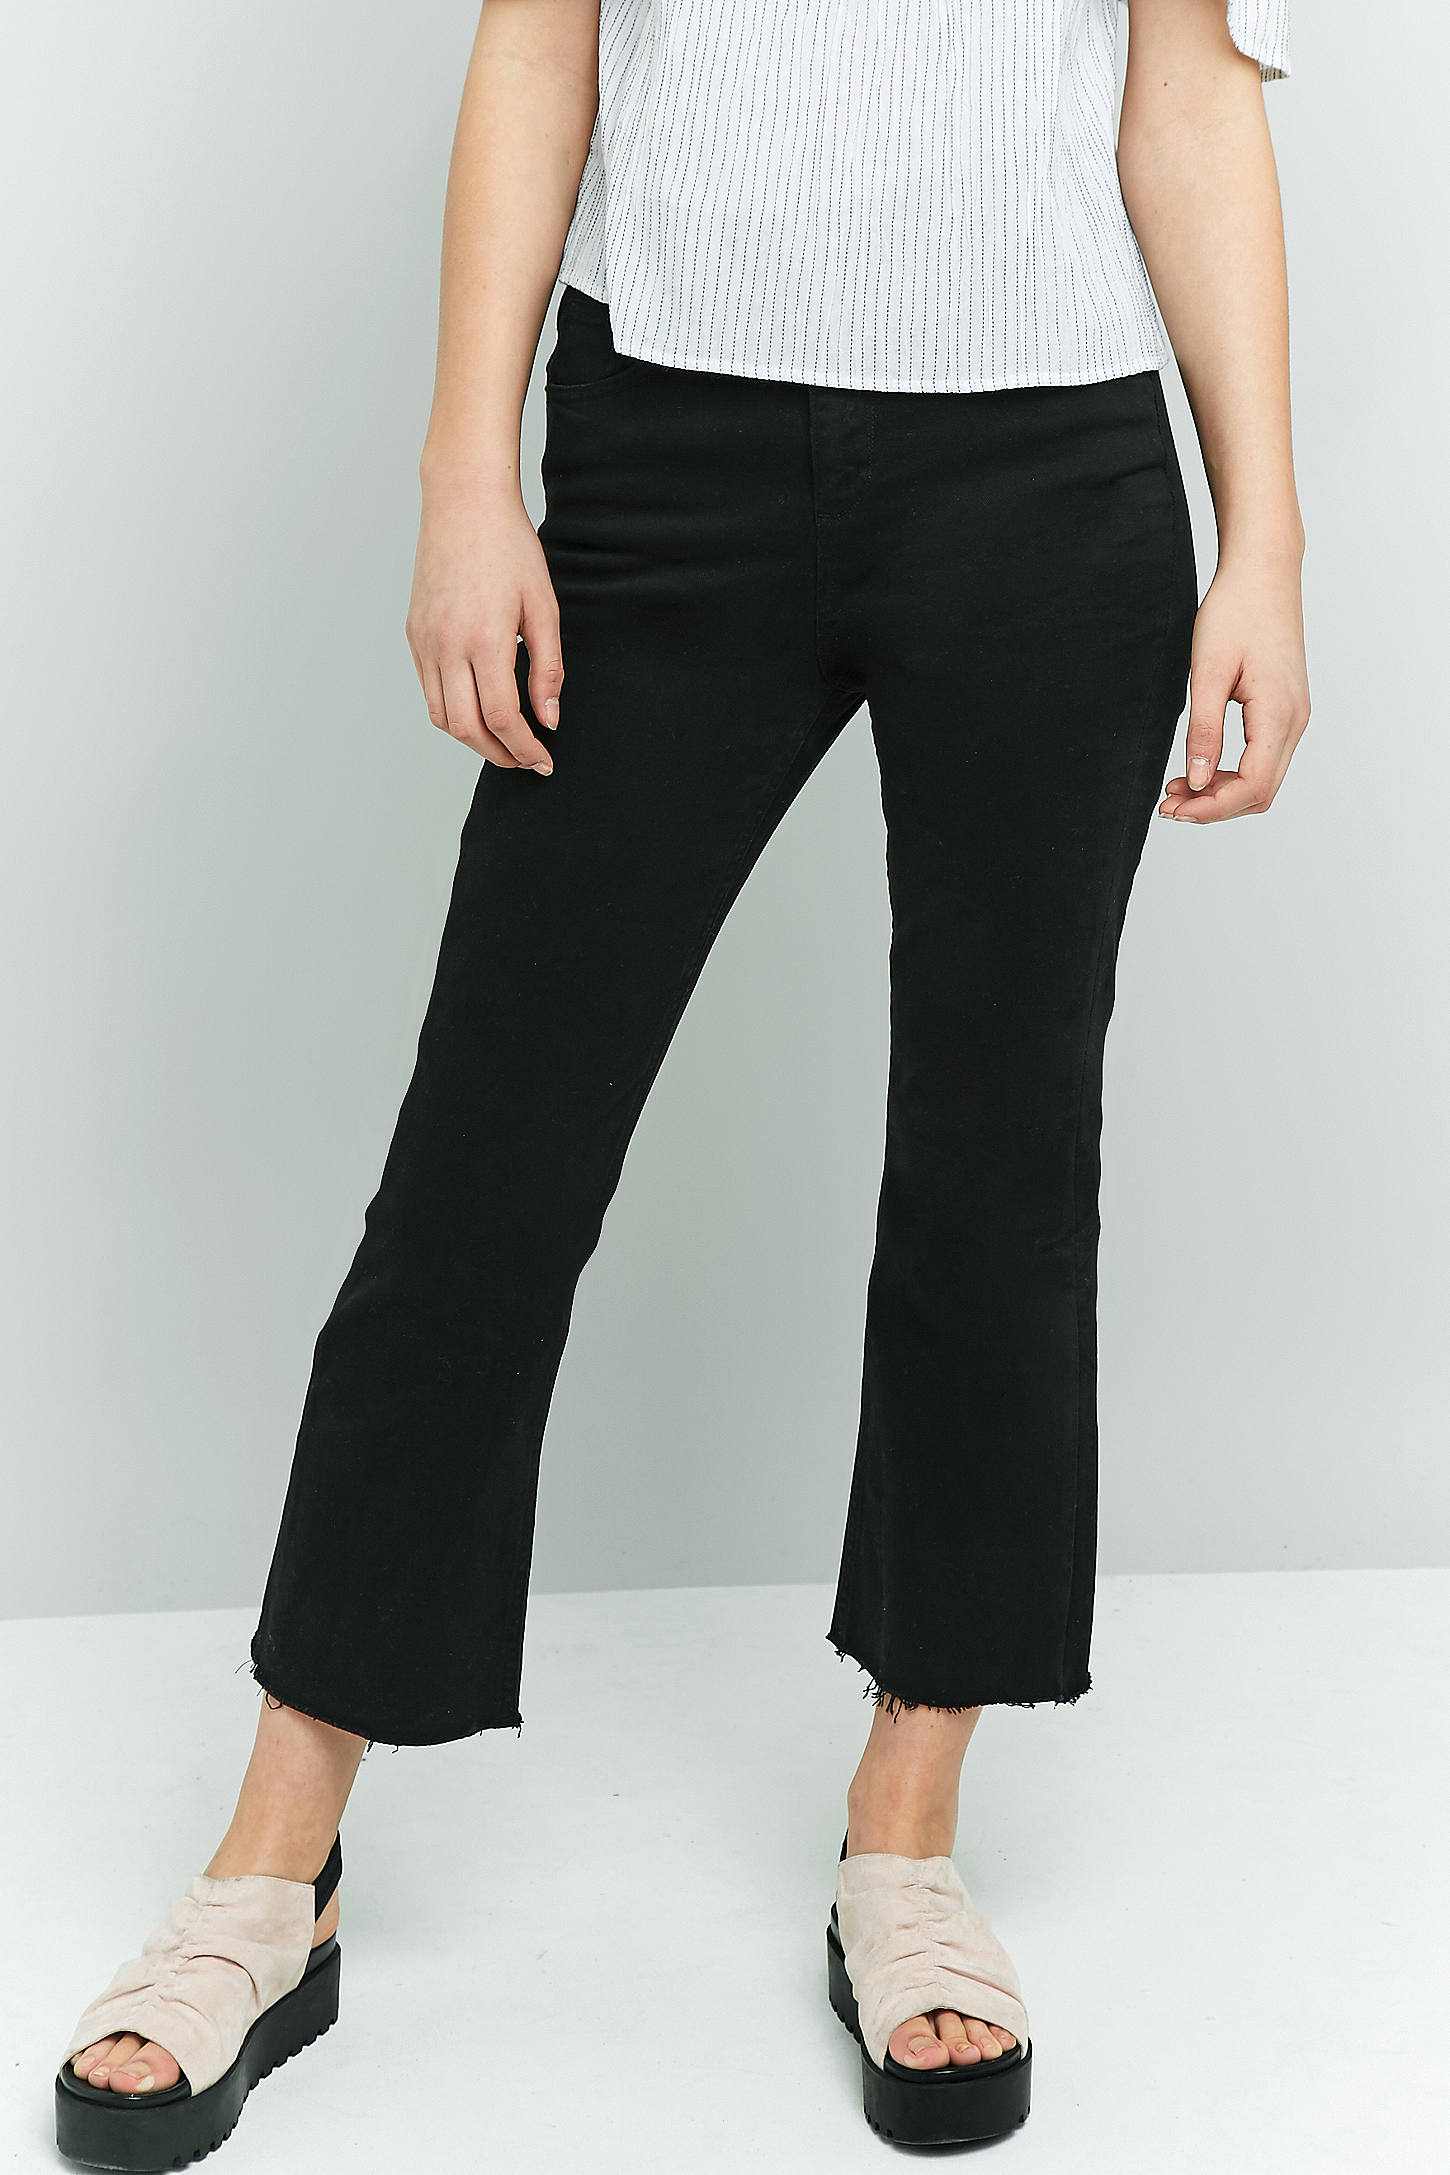 BDG Black Kick Flare Jeans | Urban Outfitters